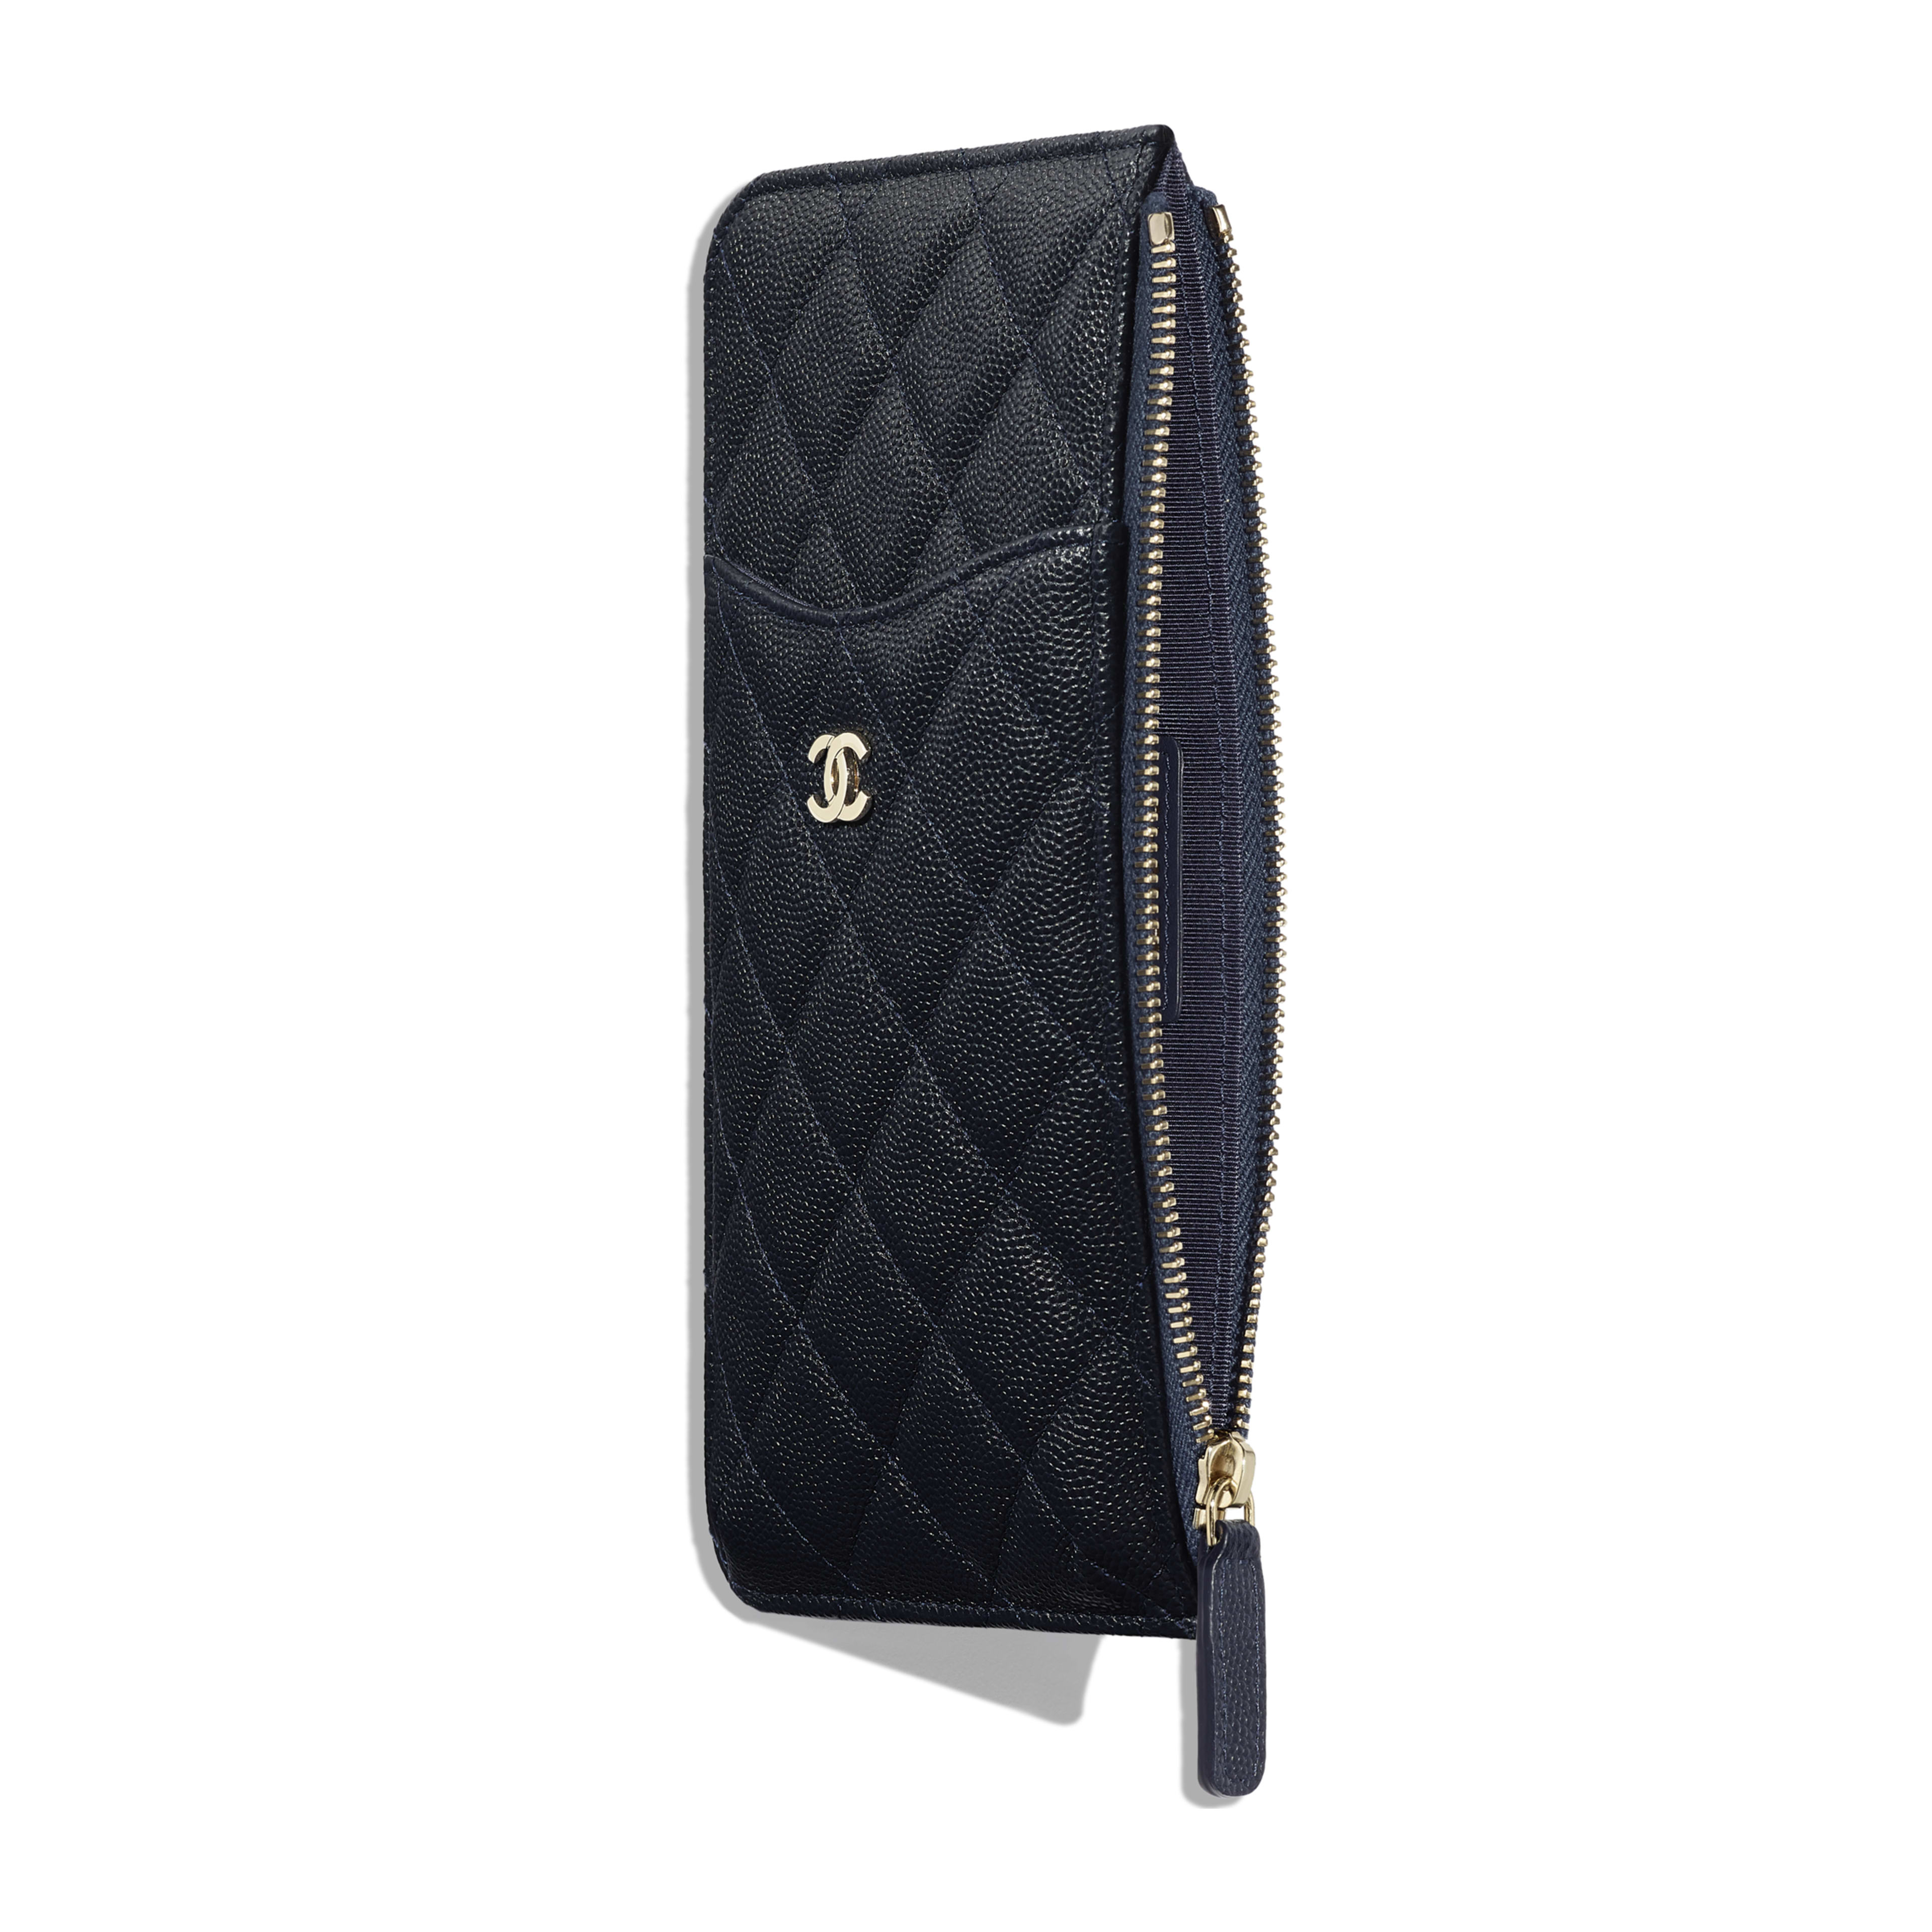 Classic Pouch for iPhone - Navy Blue - Grained Calfskin & Gold-Tone Metal - Other view - see full sized version